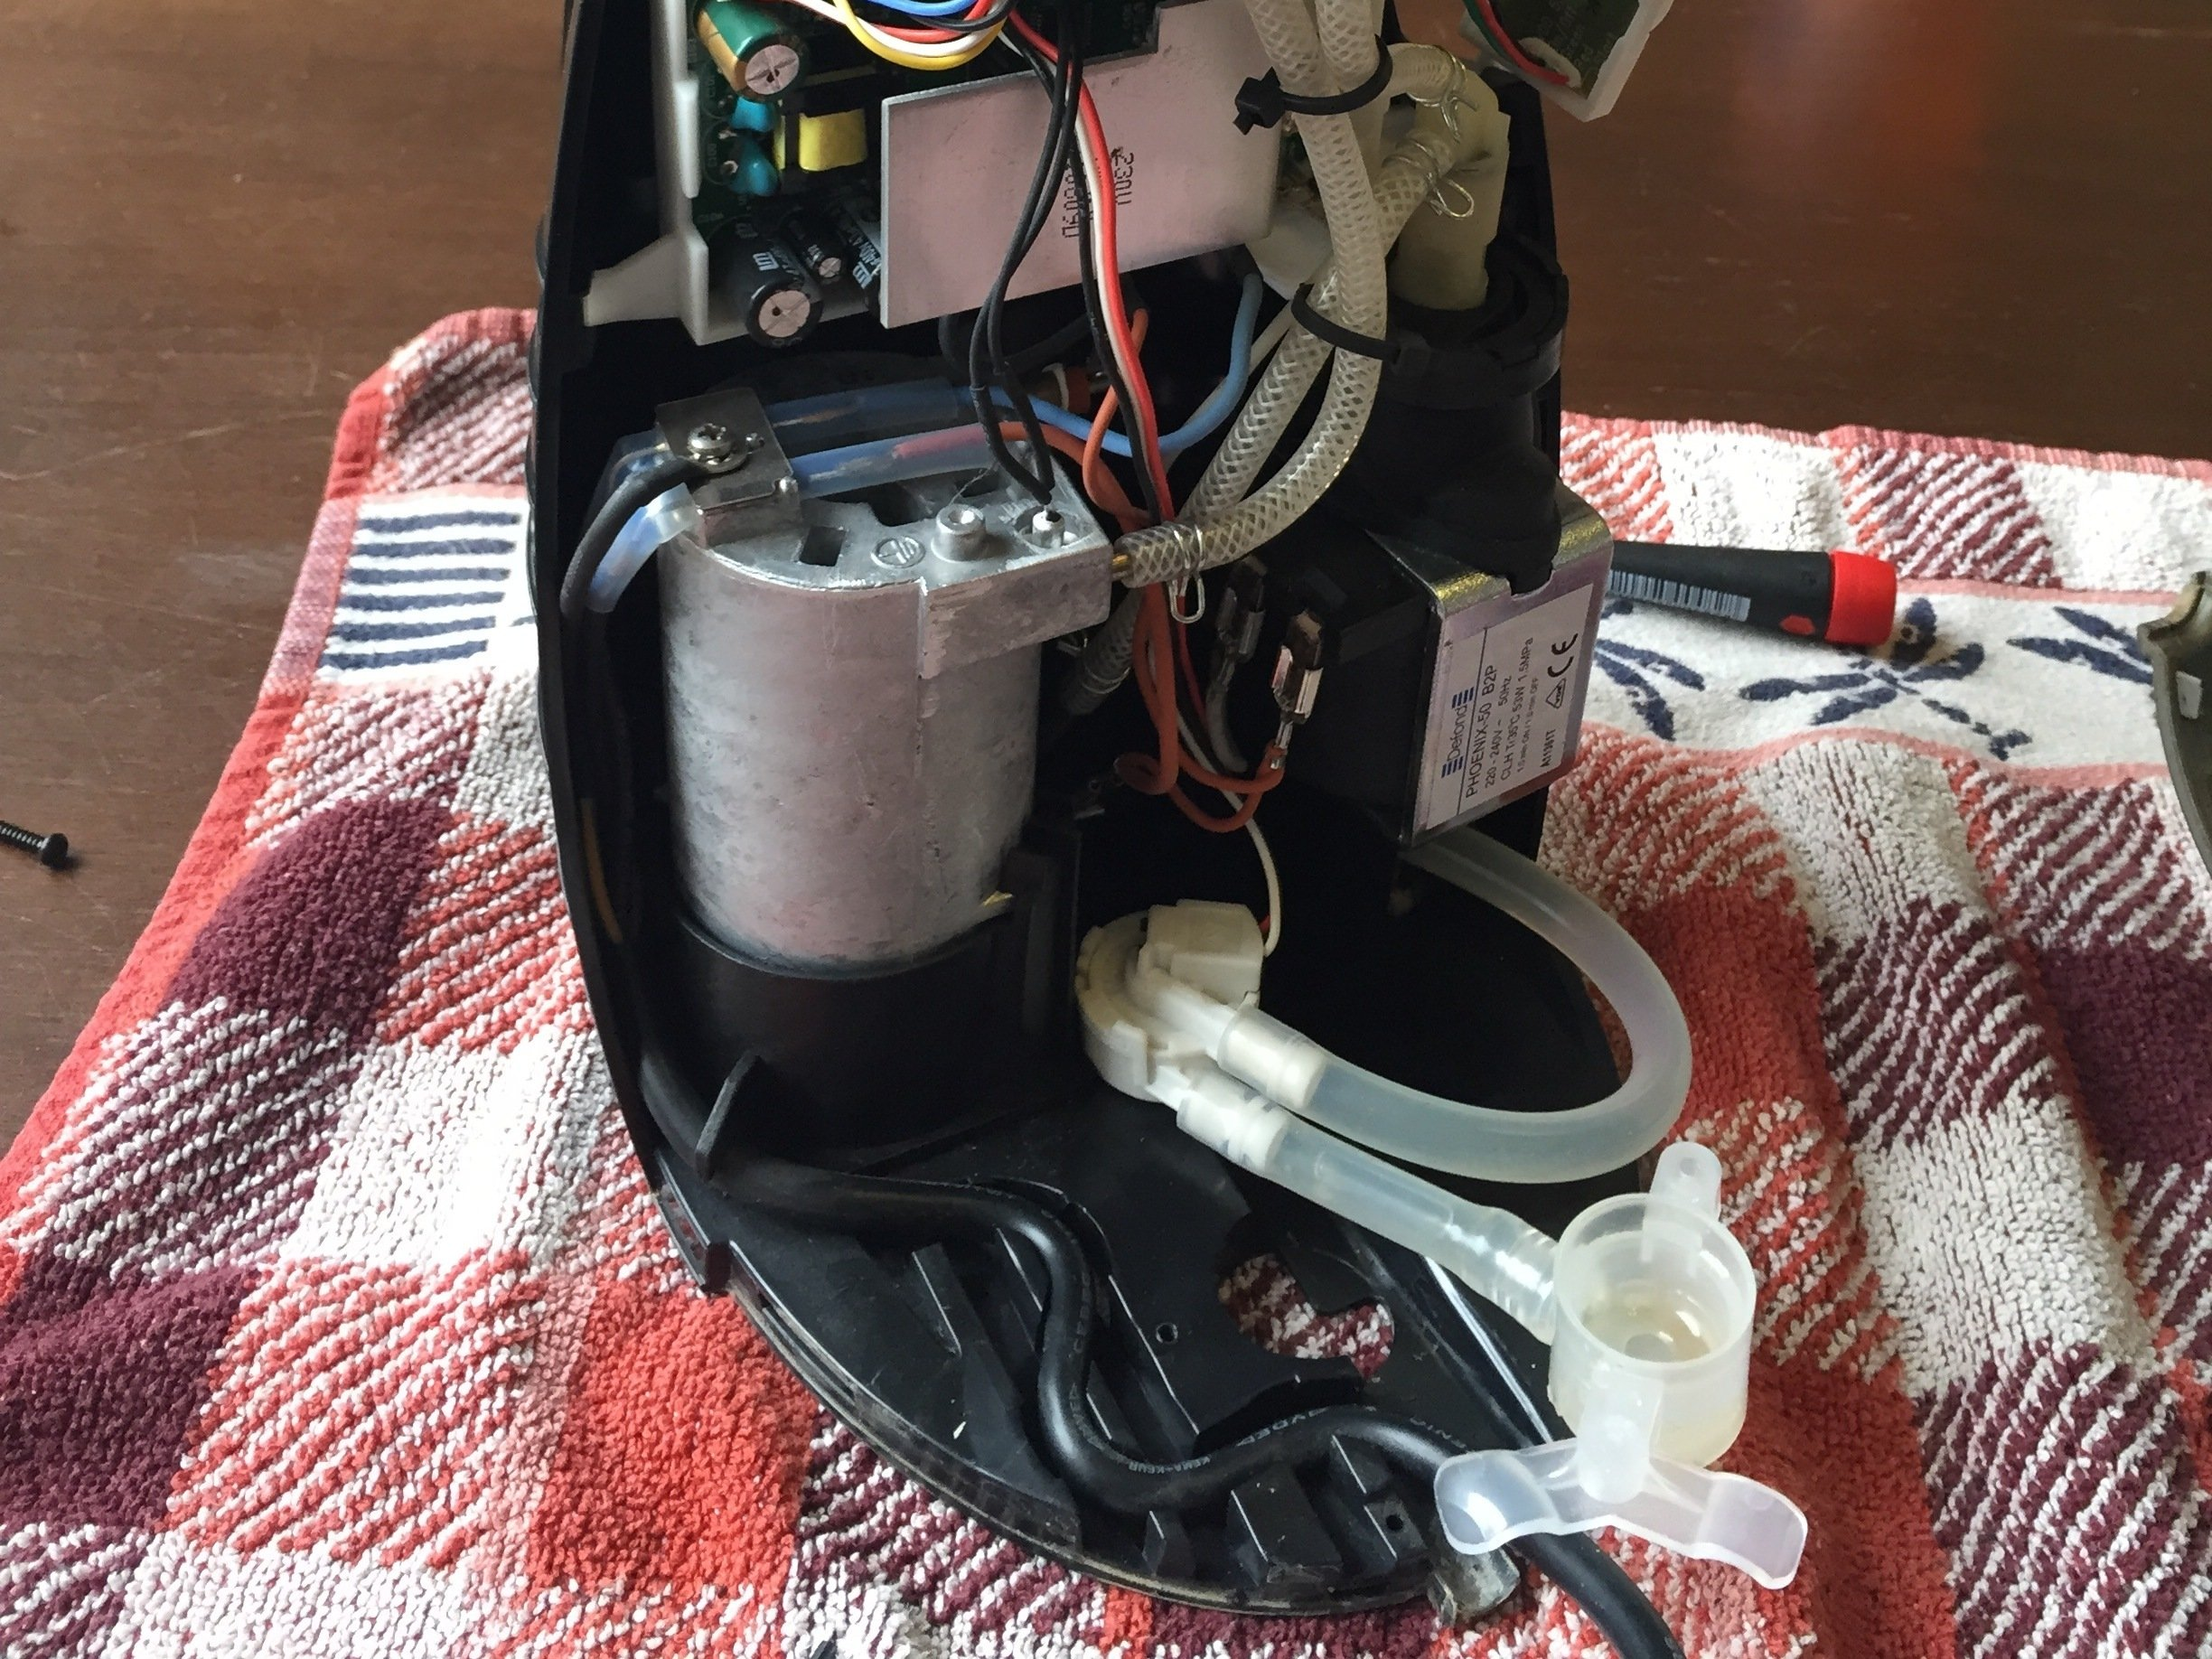 How To Fix Leaking Dolce Gusto Genio Ifixit Repair Guide